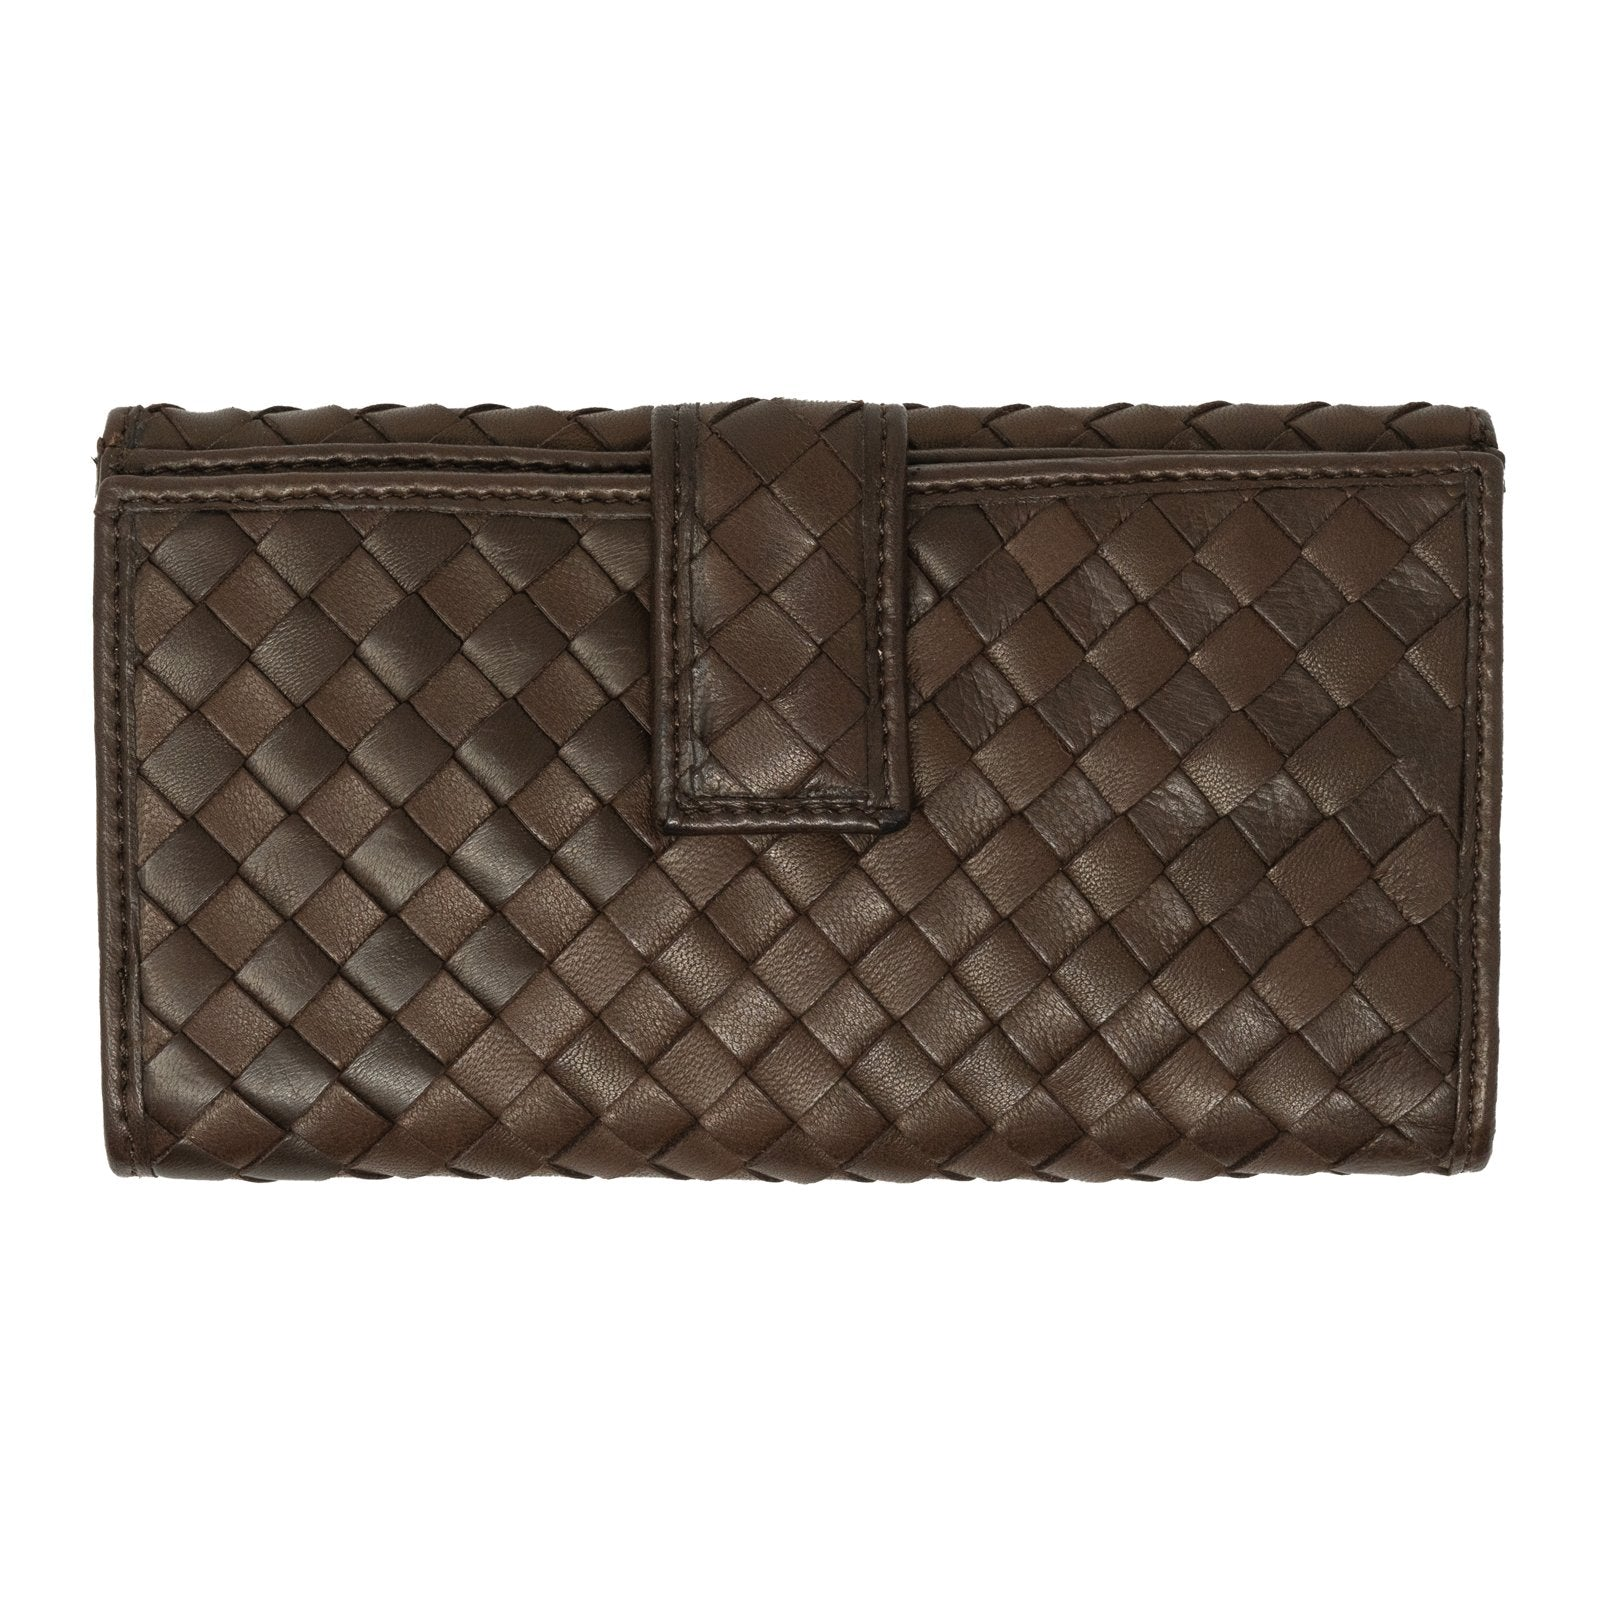 Women Intrecciato Leather Wallet in Dark Brown - Jennifer Tattanelli